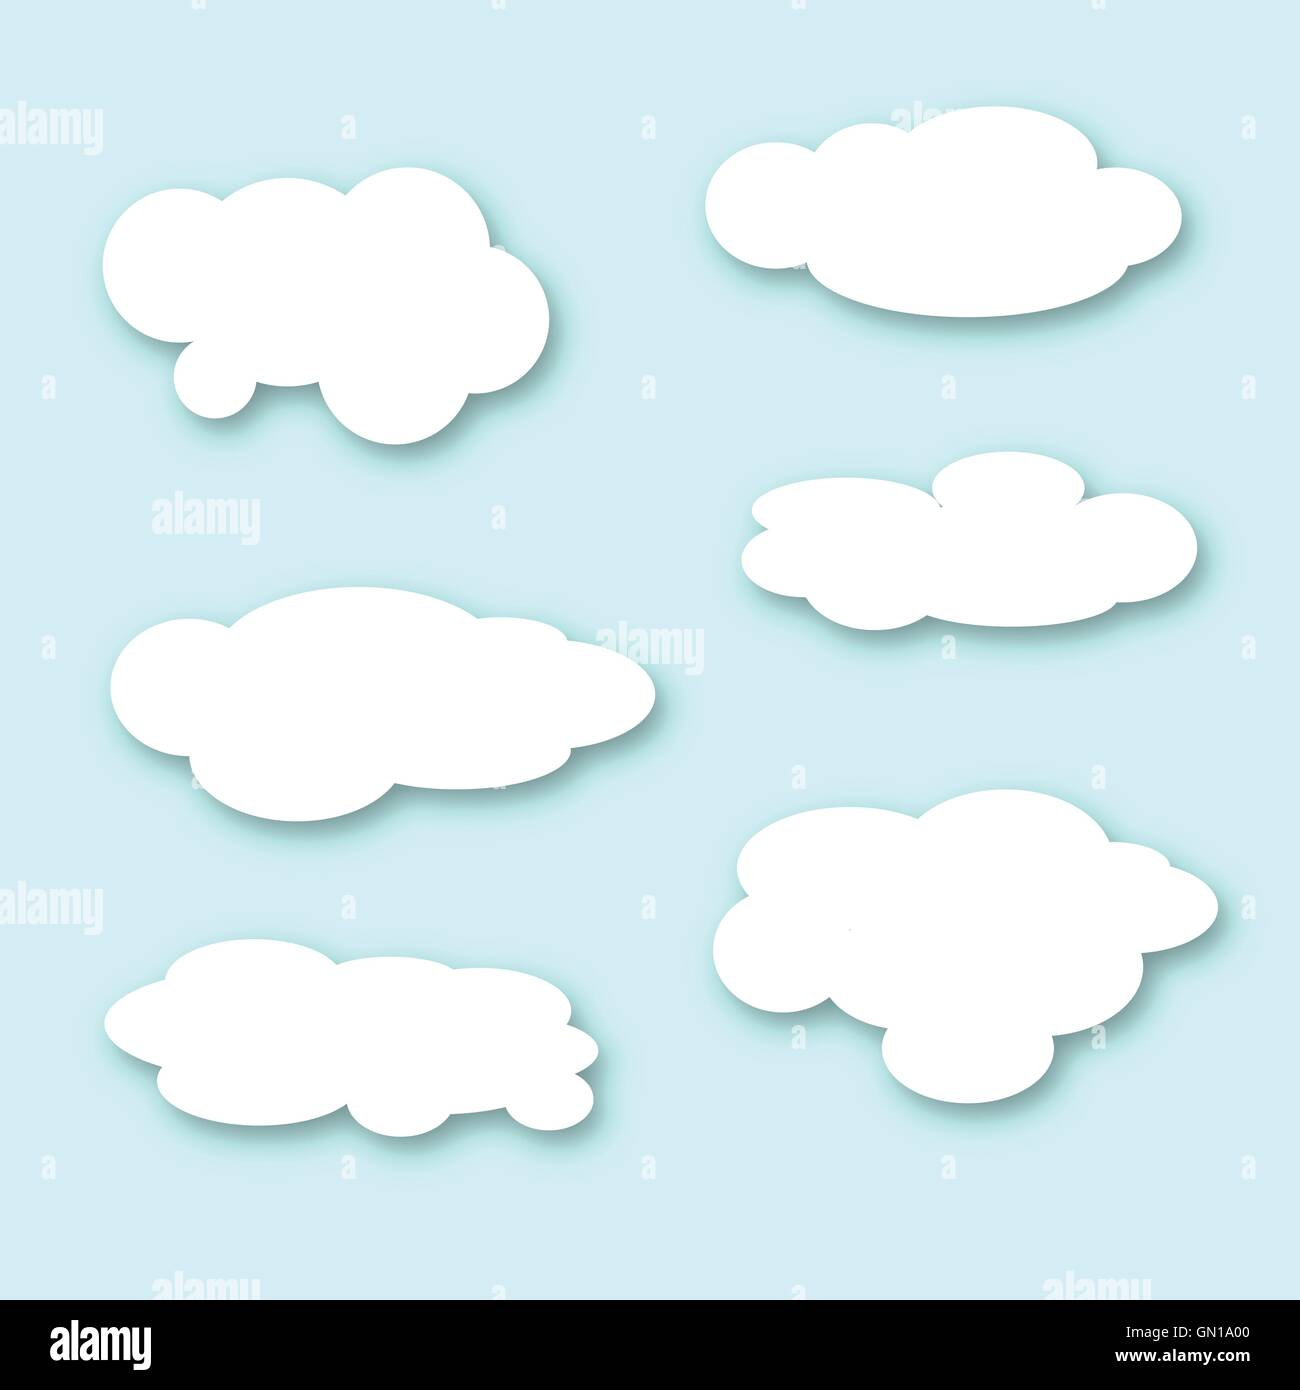 Big Fluffy Clouds - Stock Image